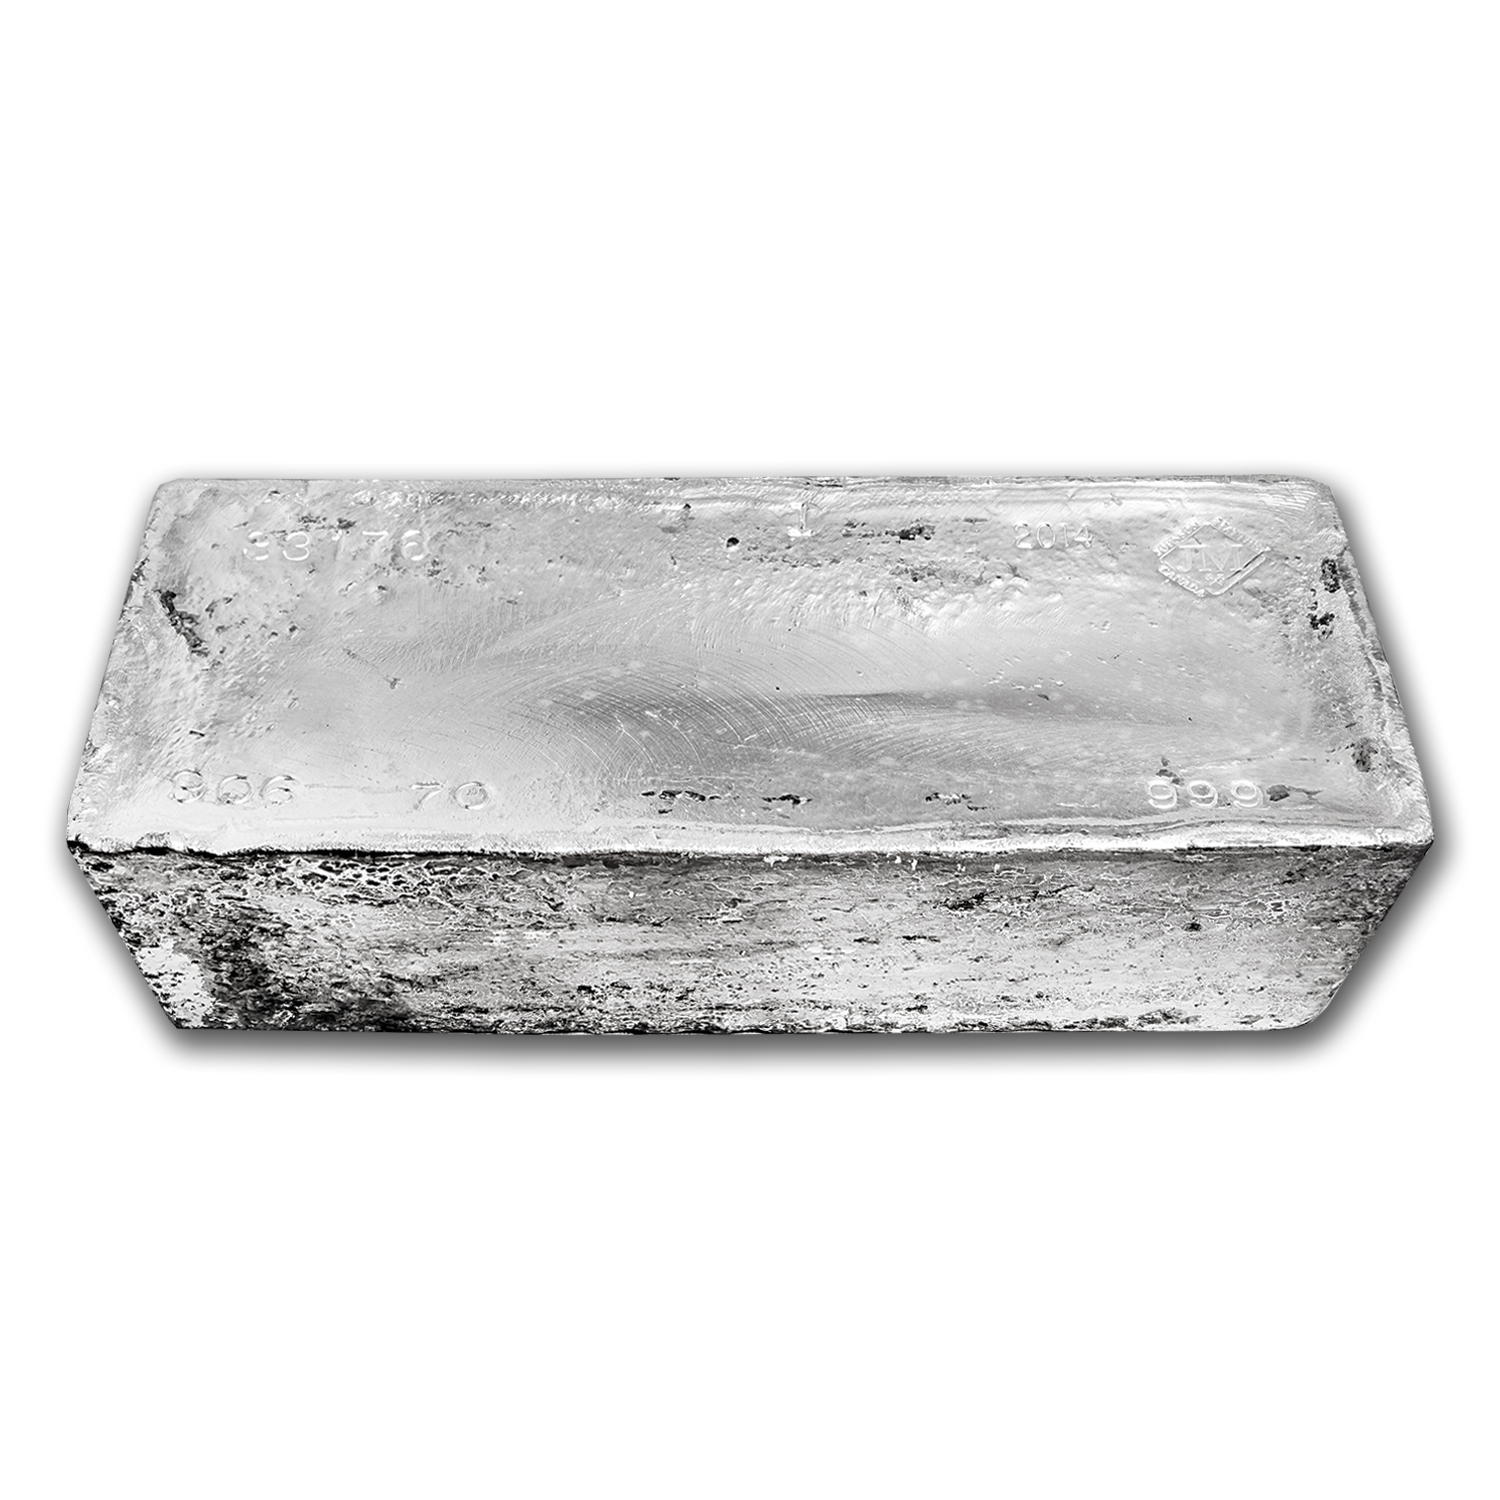 1007.60 oz Silver Bars - Johnson Matthey